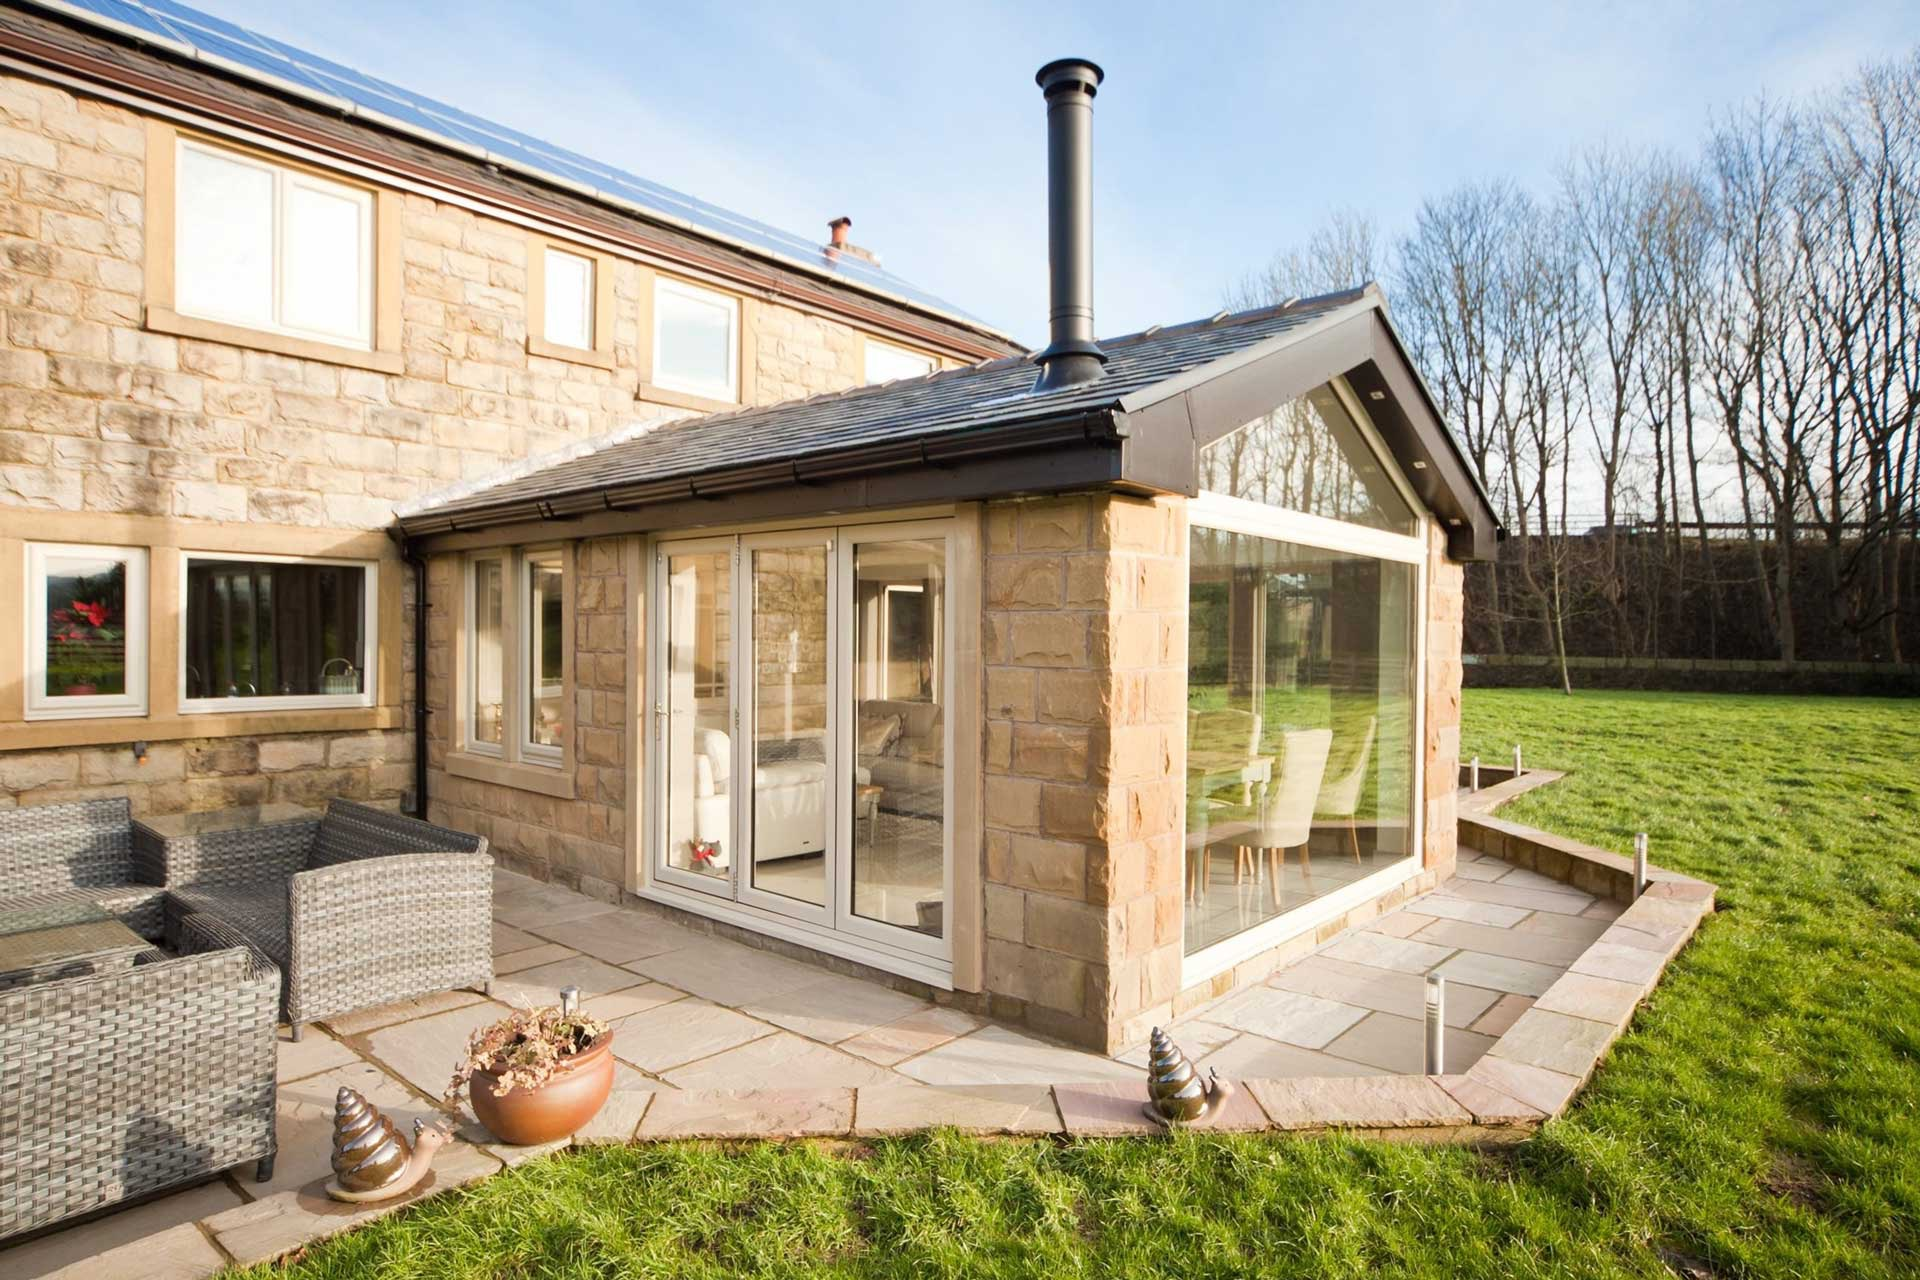 House Extensions in Dorset